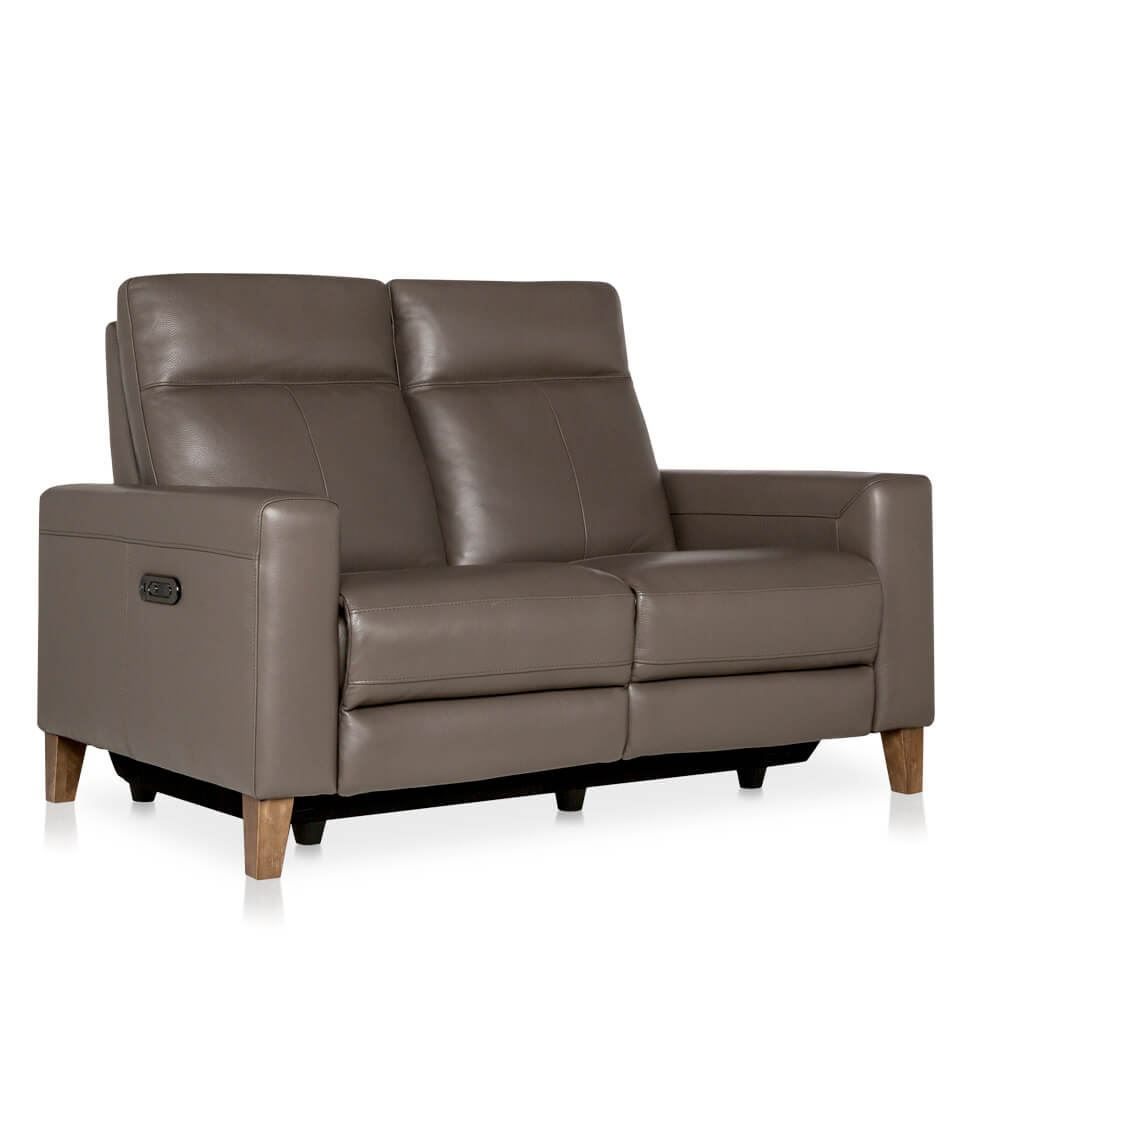 Xander 2 Seat Leather Electric Recliner Sofa Taupe ...